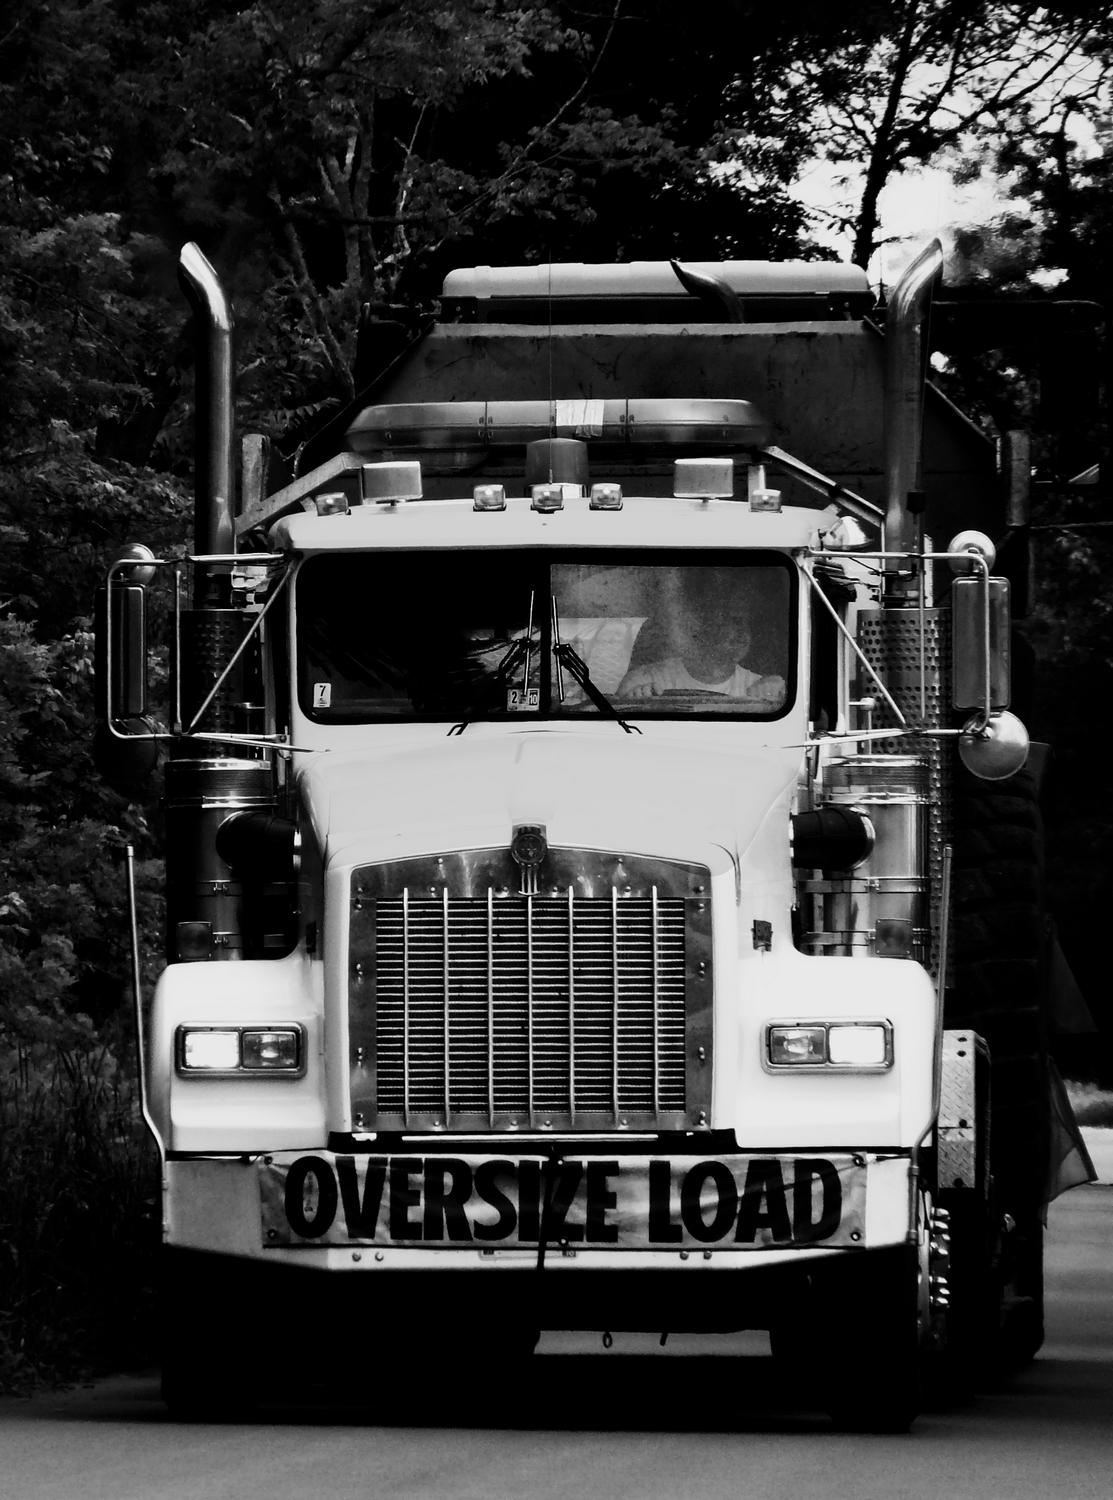 - Here's the truck in dynamic black and white - Panasonic DMC-FZ18 - - art  - photography - by Tony Karp